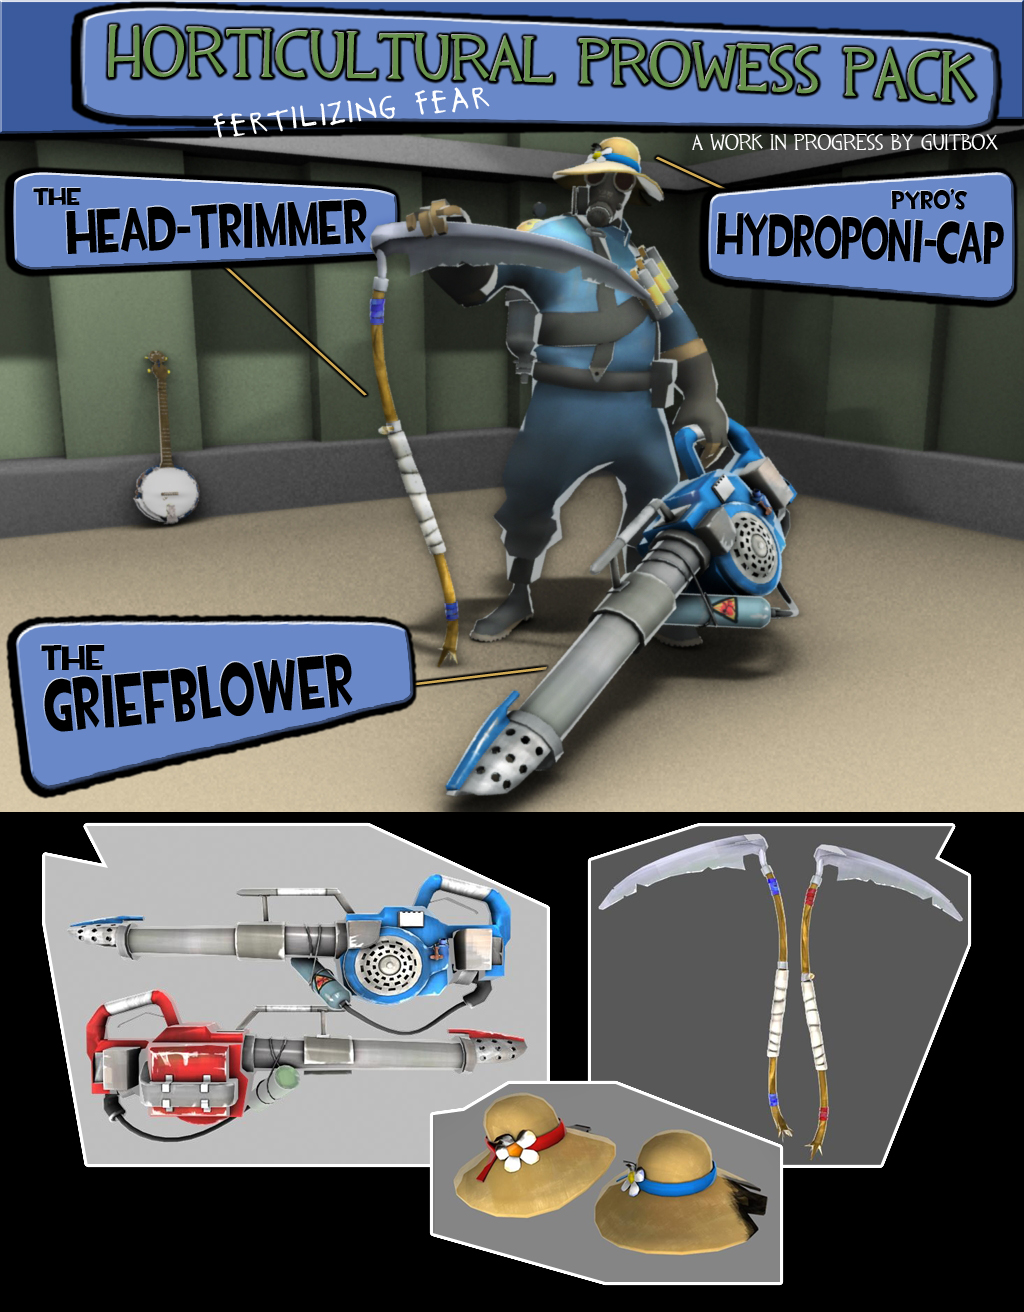 vandole games adjustments really mini another wrenchesgunslinger between switch they without with destroying last much mind dont repair other dispenserteleporters point want where defense keep stuff payloads like perk huge support while maps team however which take anyway shotgun time finally used took engie this recolor machine mann tale shitty contract cities